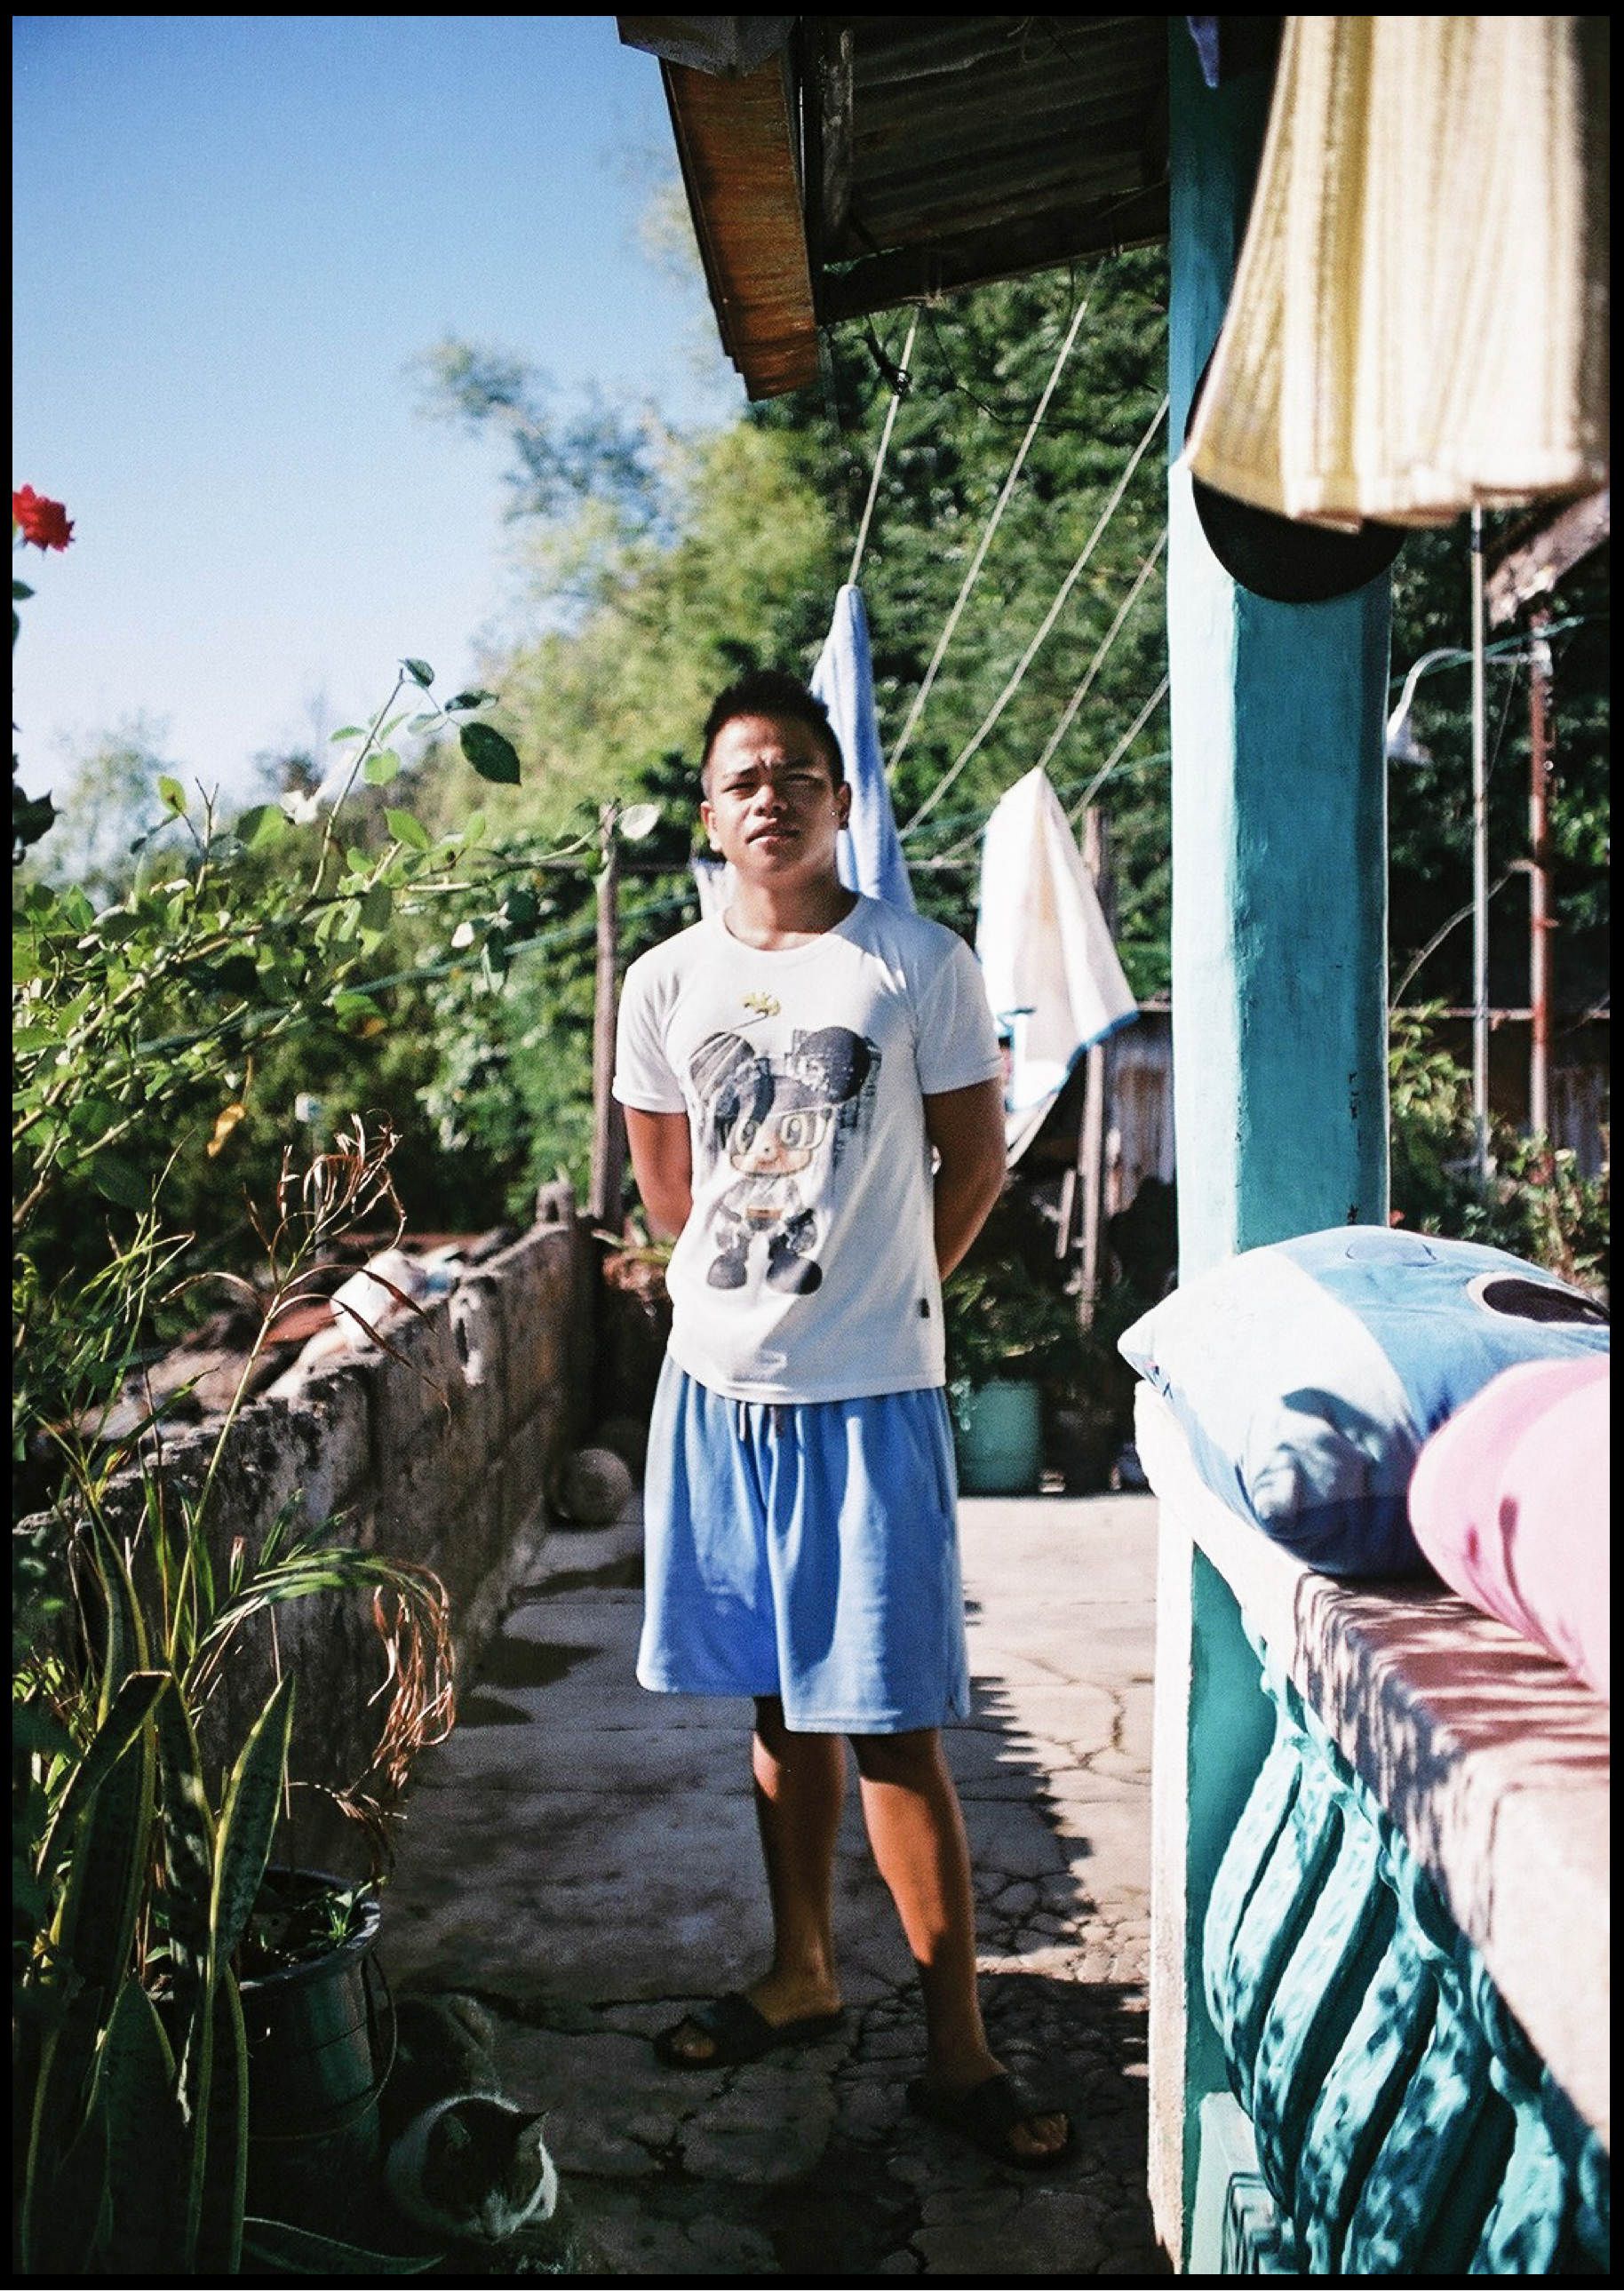 CoxCo_daily_life_Philippines_02 2019-08-12 0.46.47.png